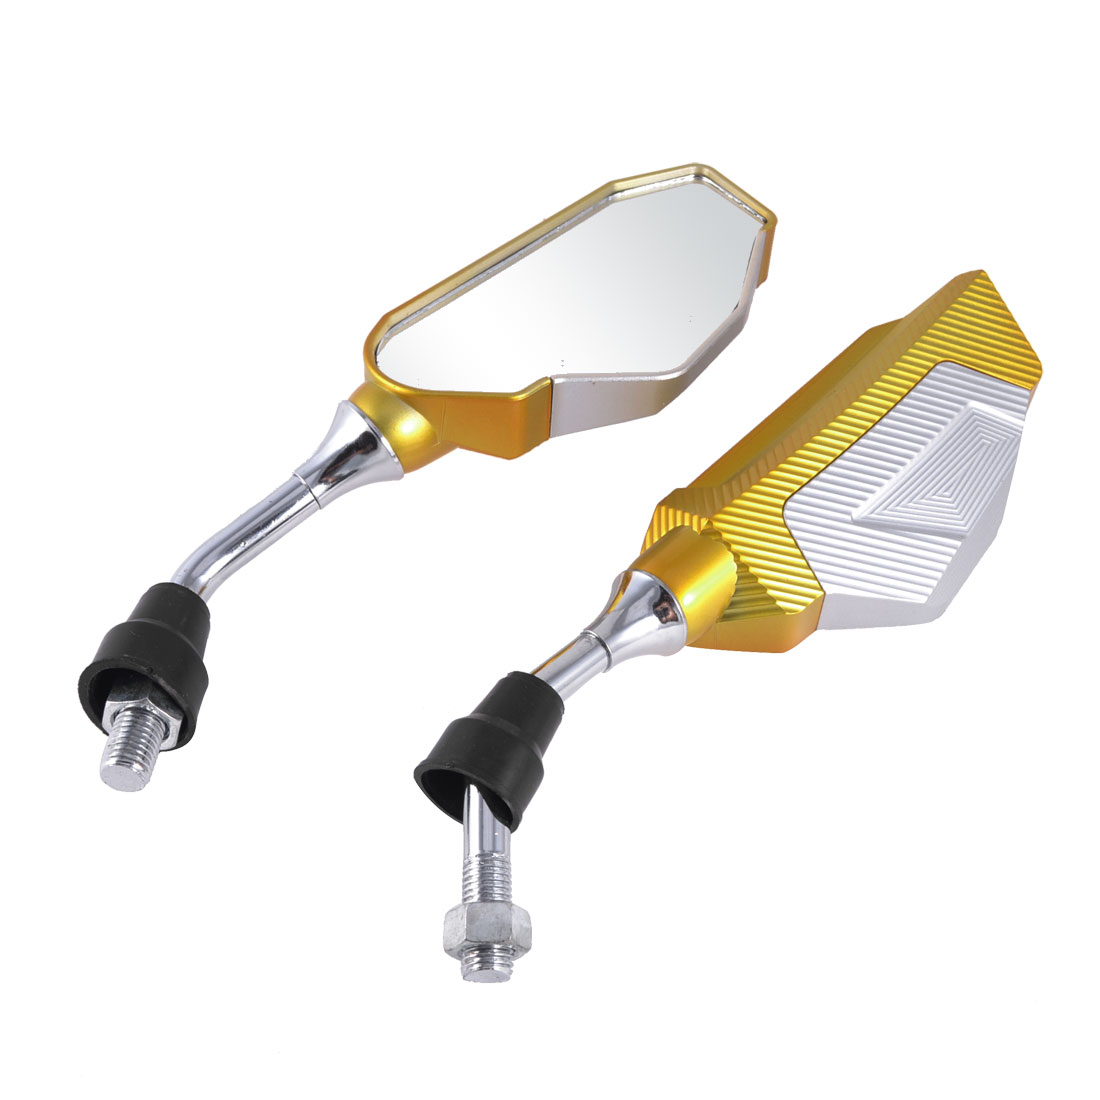 Gold Silver Tone Casing Motorcycle Rear View Blind Spot Mirror 2 Pcs